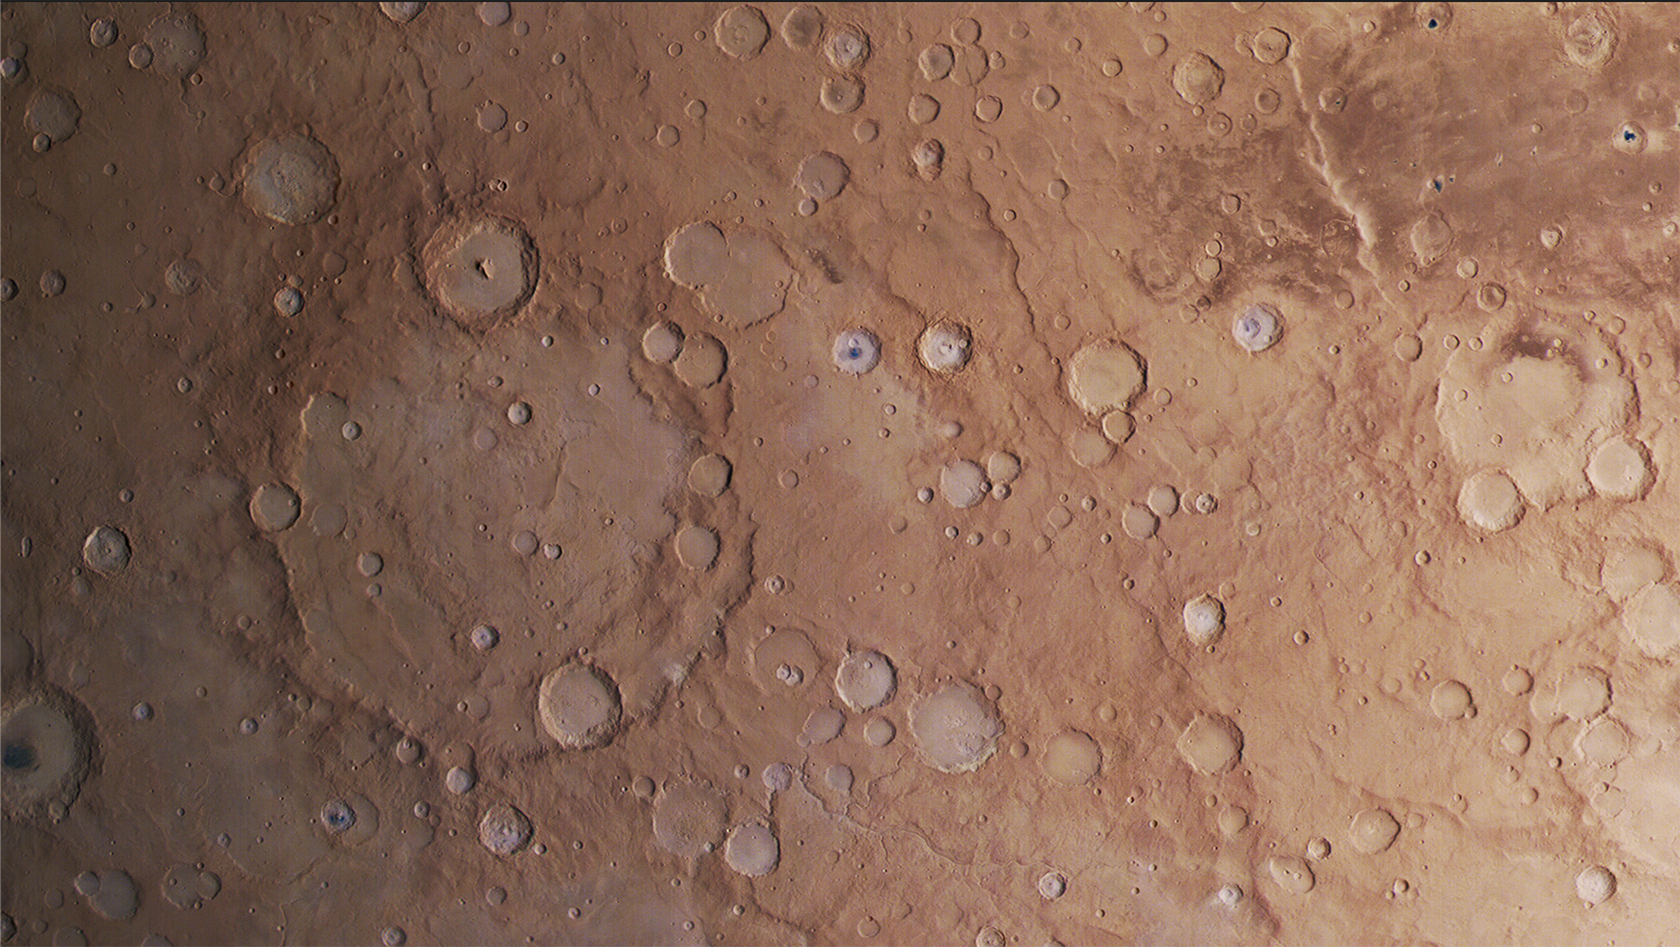 Mars Express view of craters